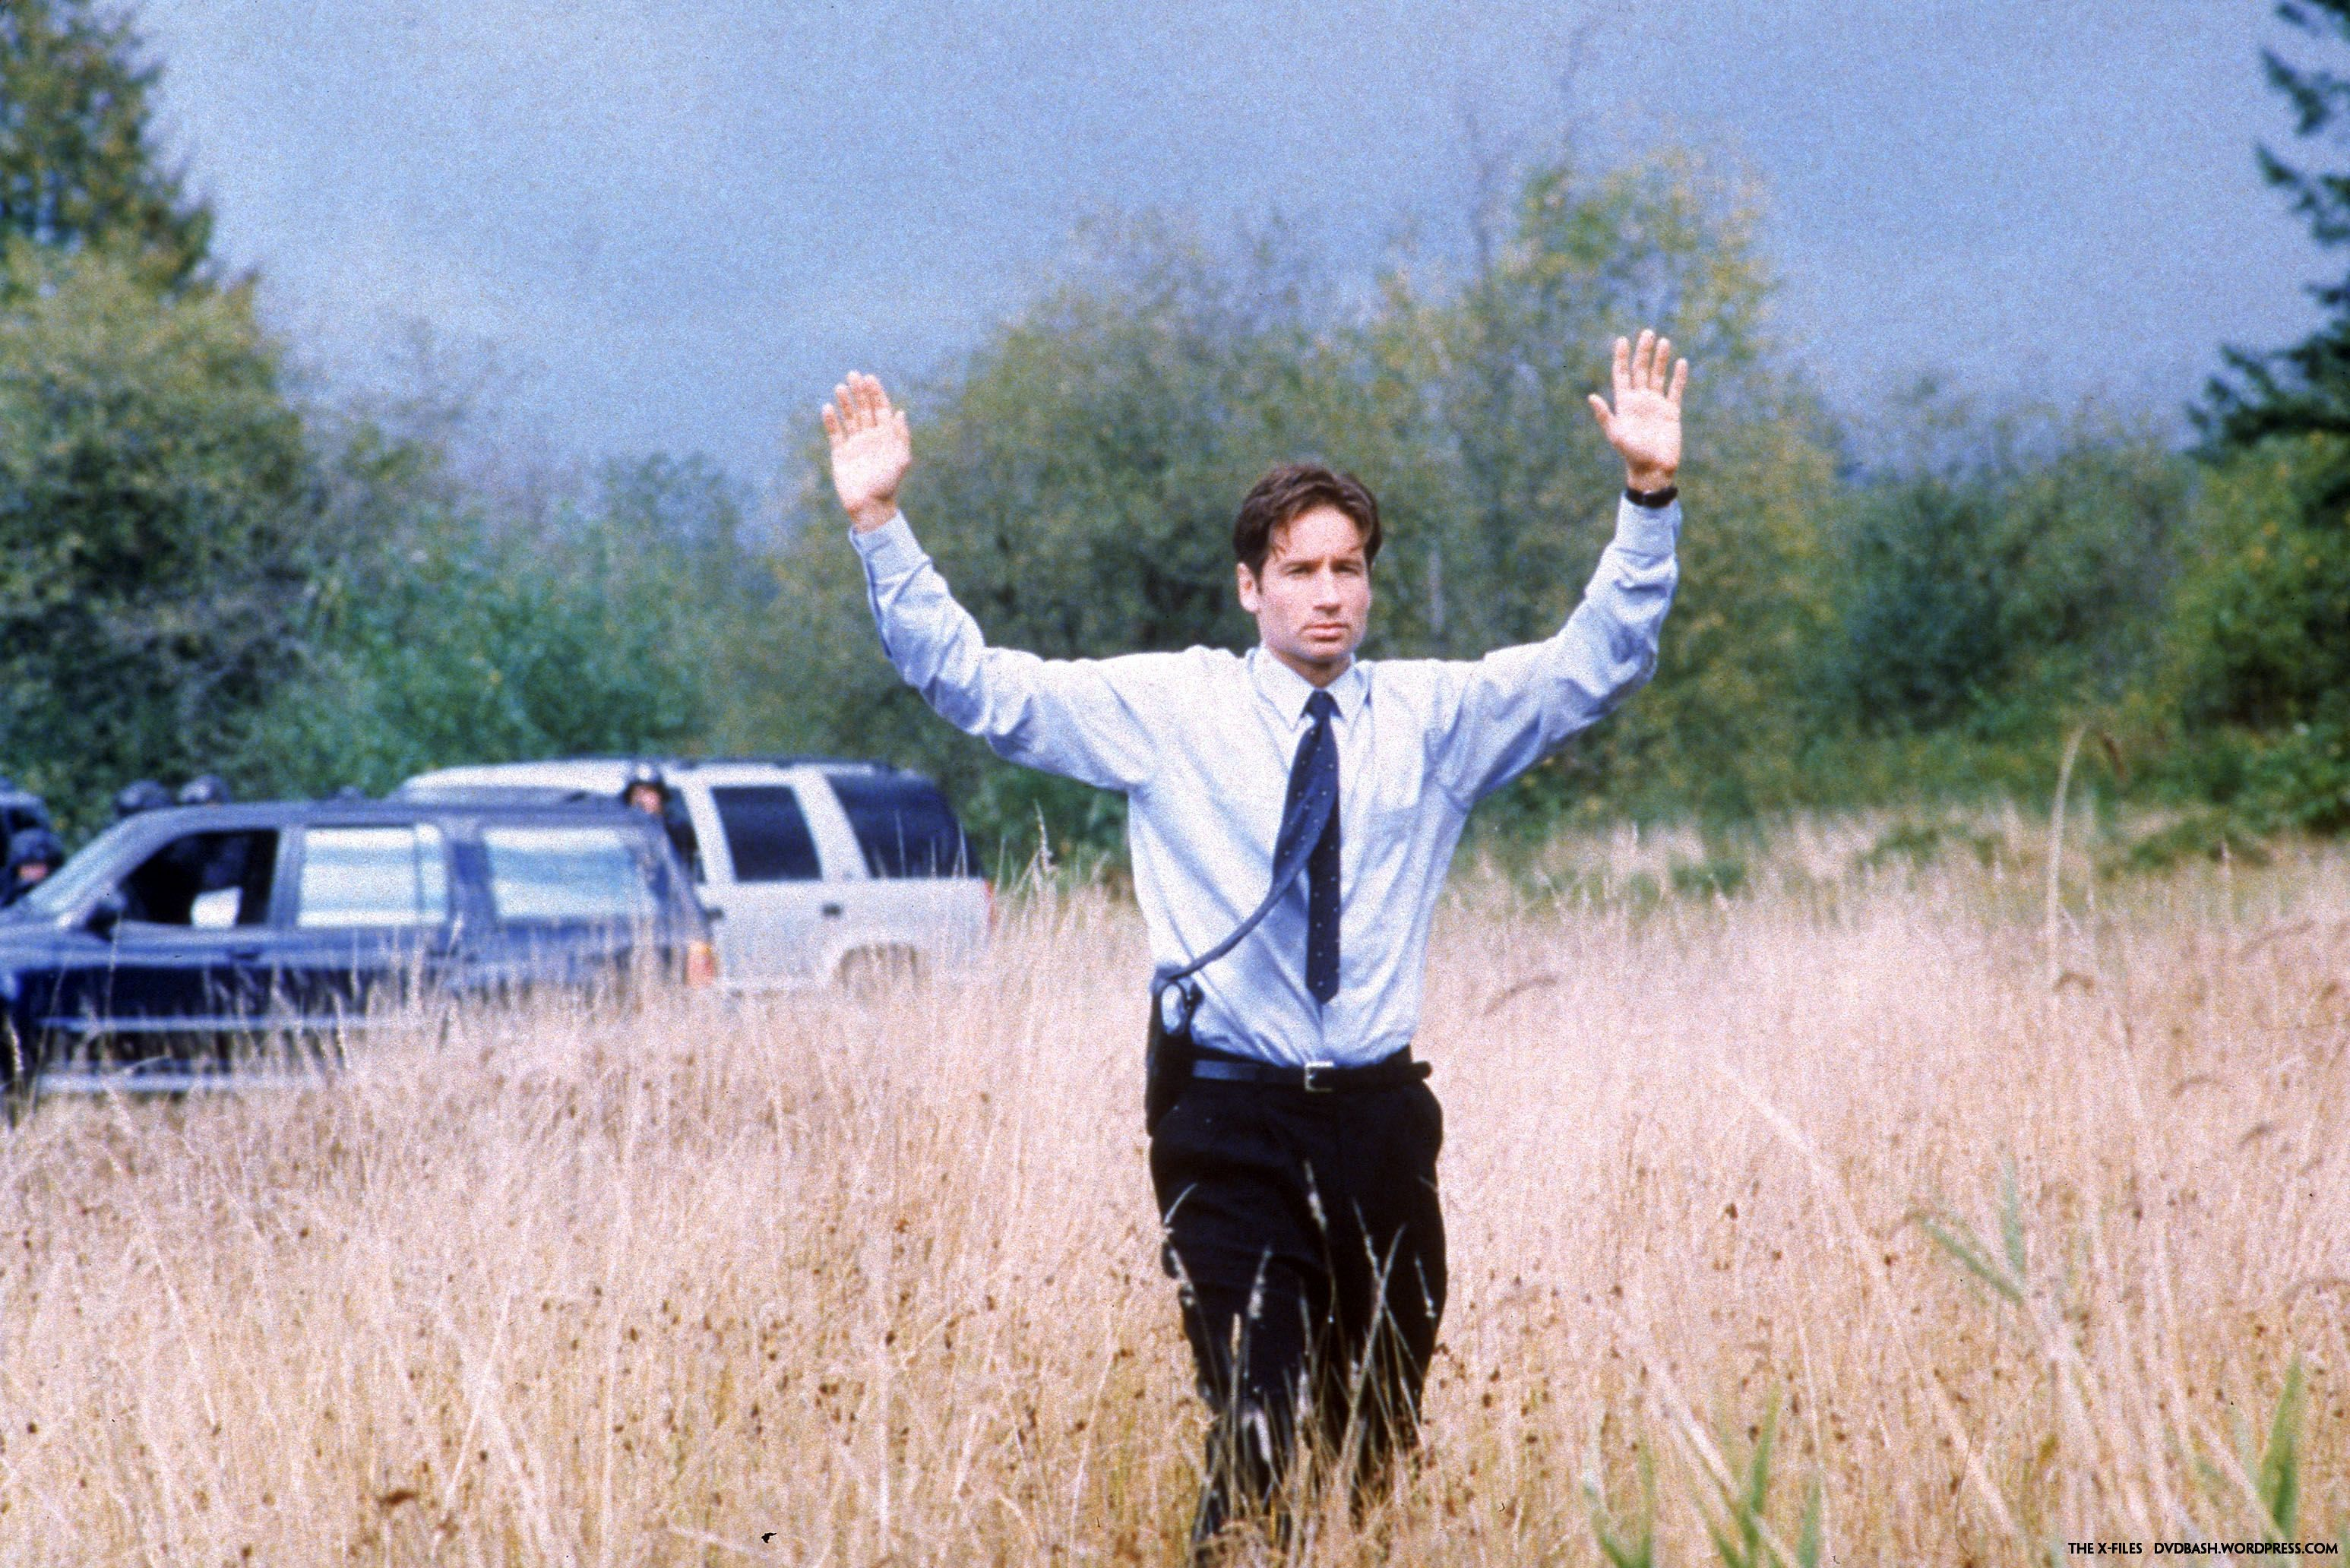 x-files-s4-duchovny-mulder-anderson-scully7wallpapeer2.jpg